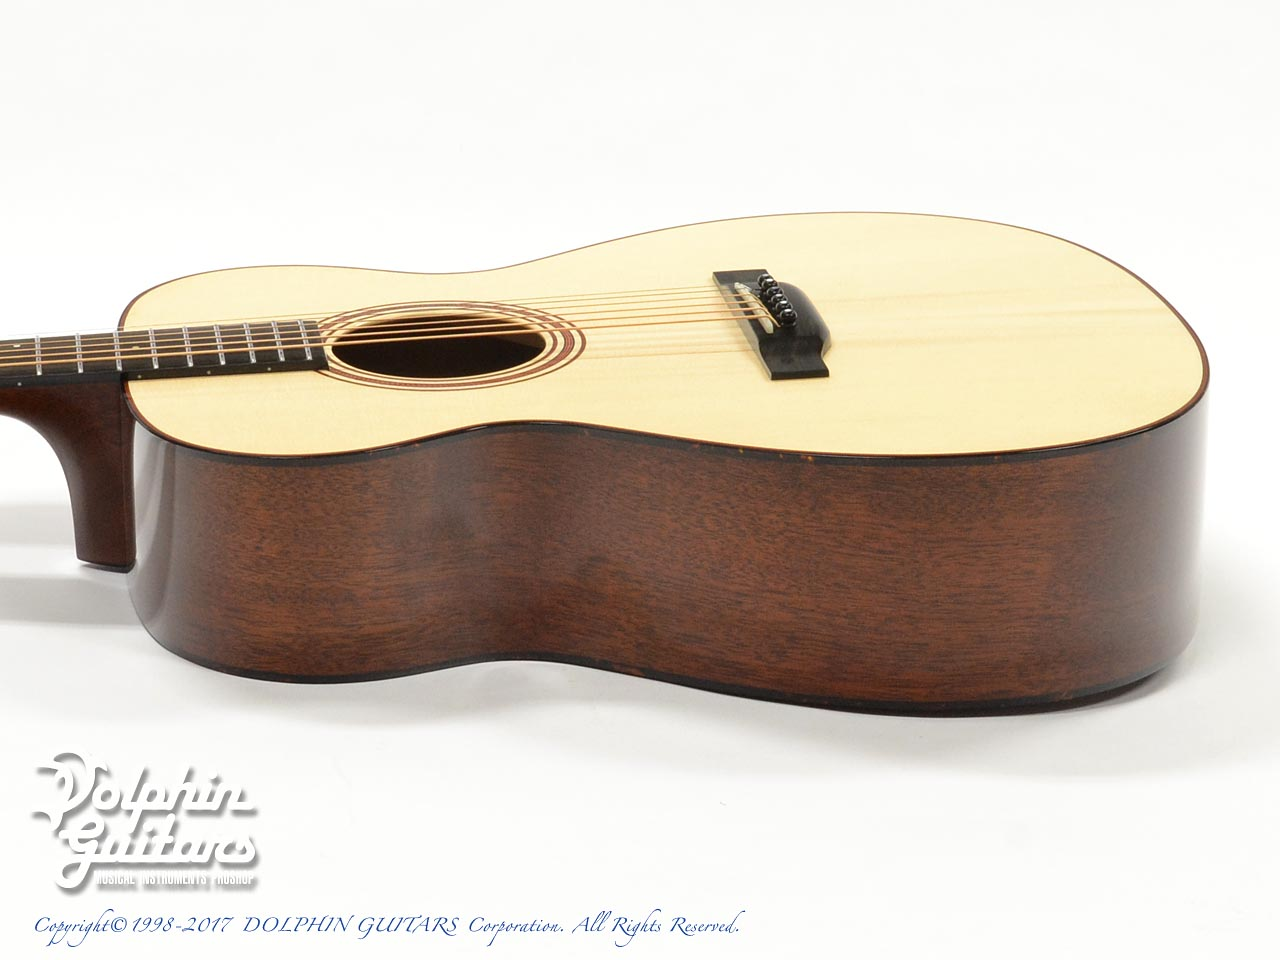 SWITCH: SC00-1 A-VH Limited (Adirondack Spruce & Vintage Honduras Mahogany) (2)